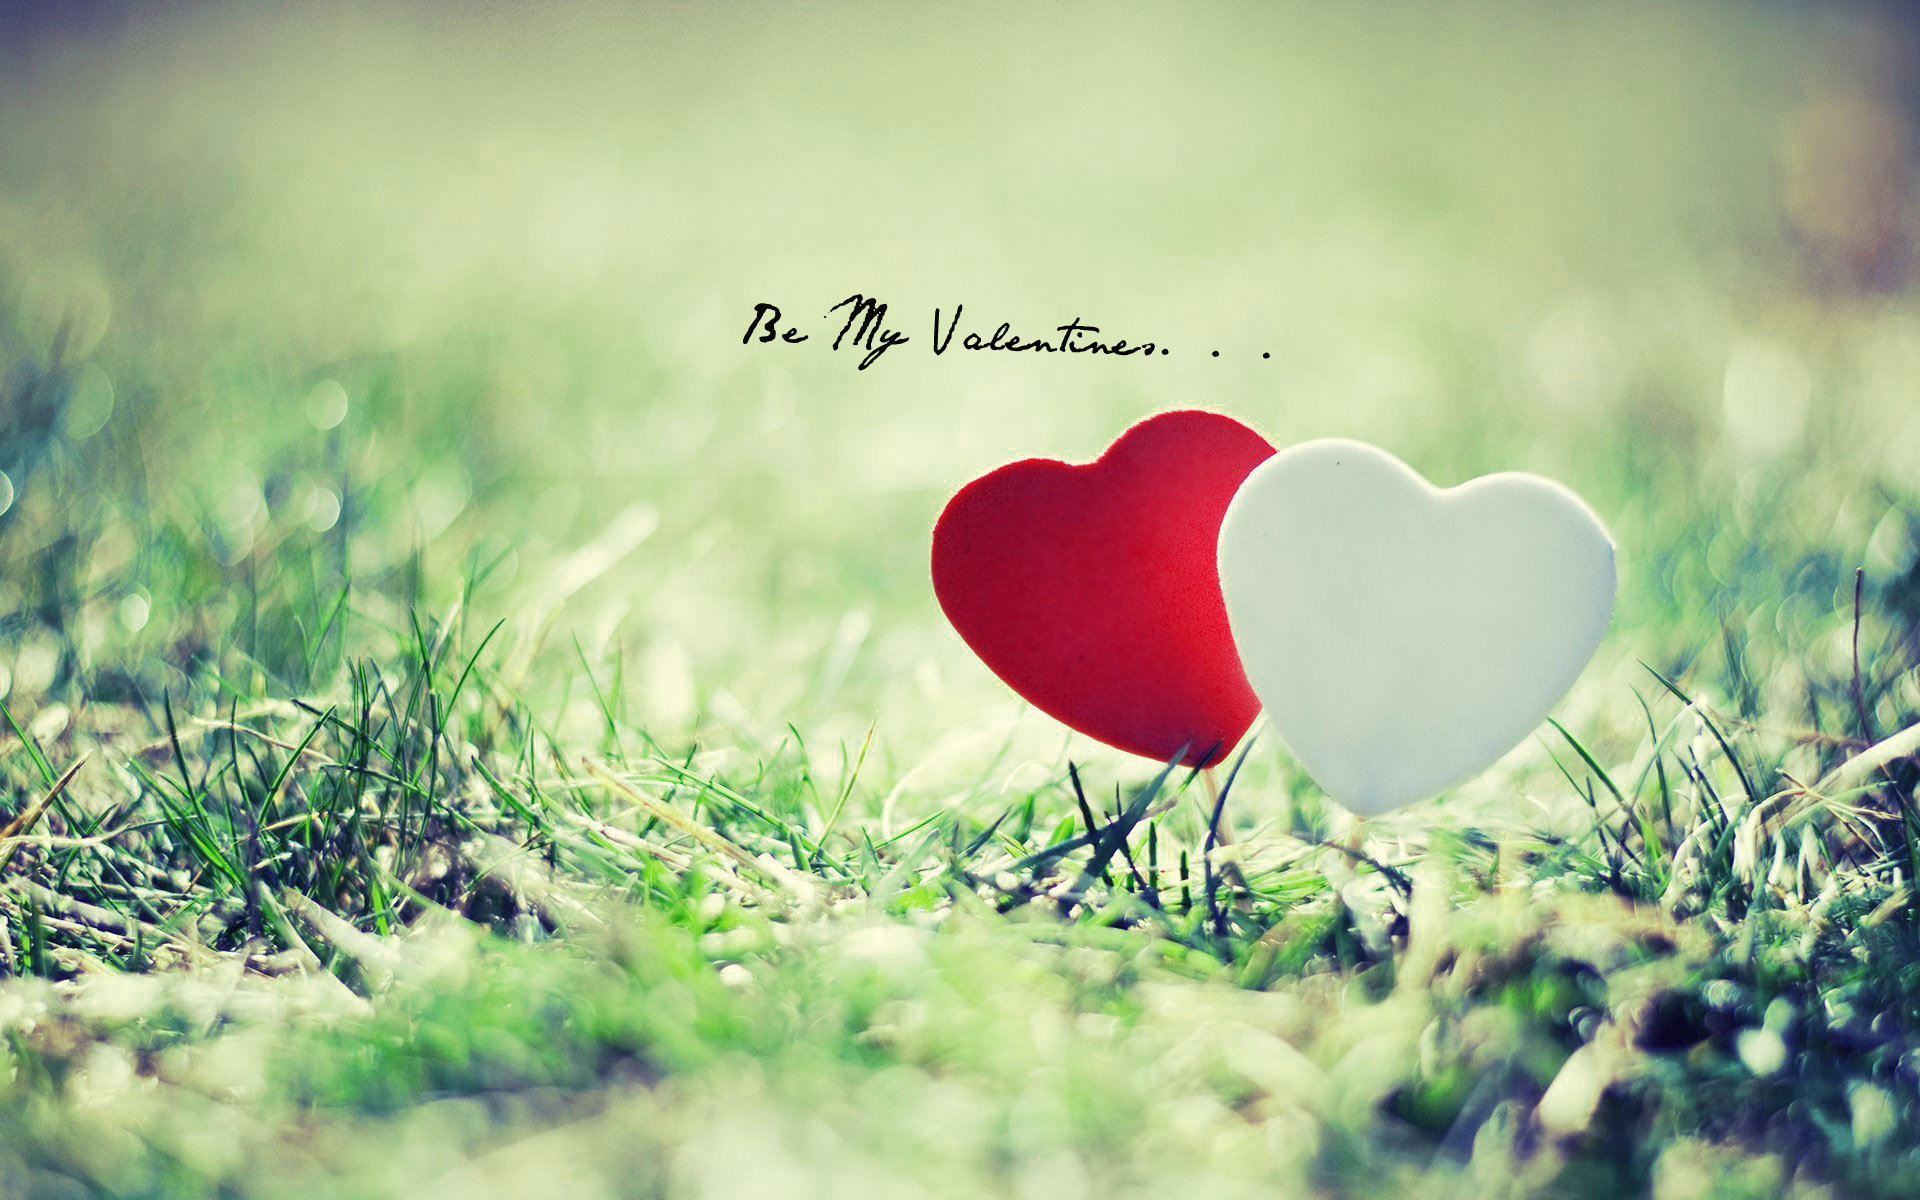 Be My Valentine   Wallpaper High Definition High Quality Widescreen 1920x1200